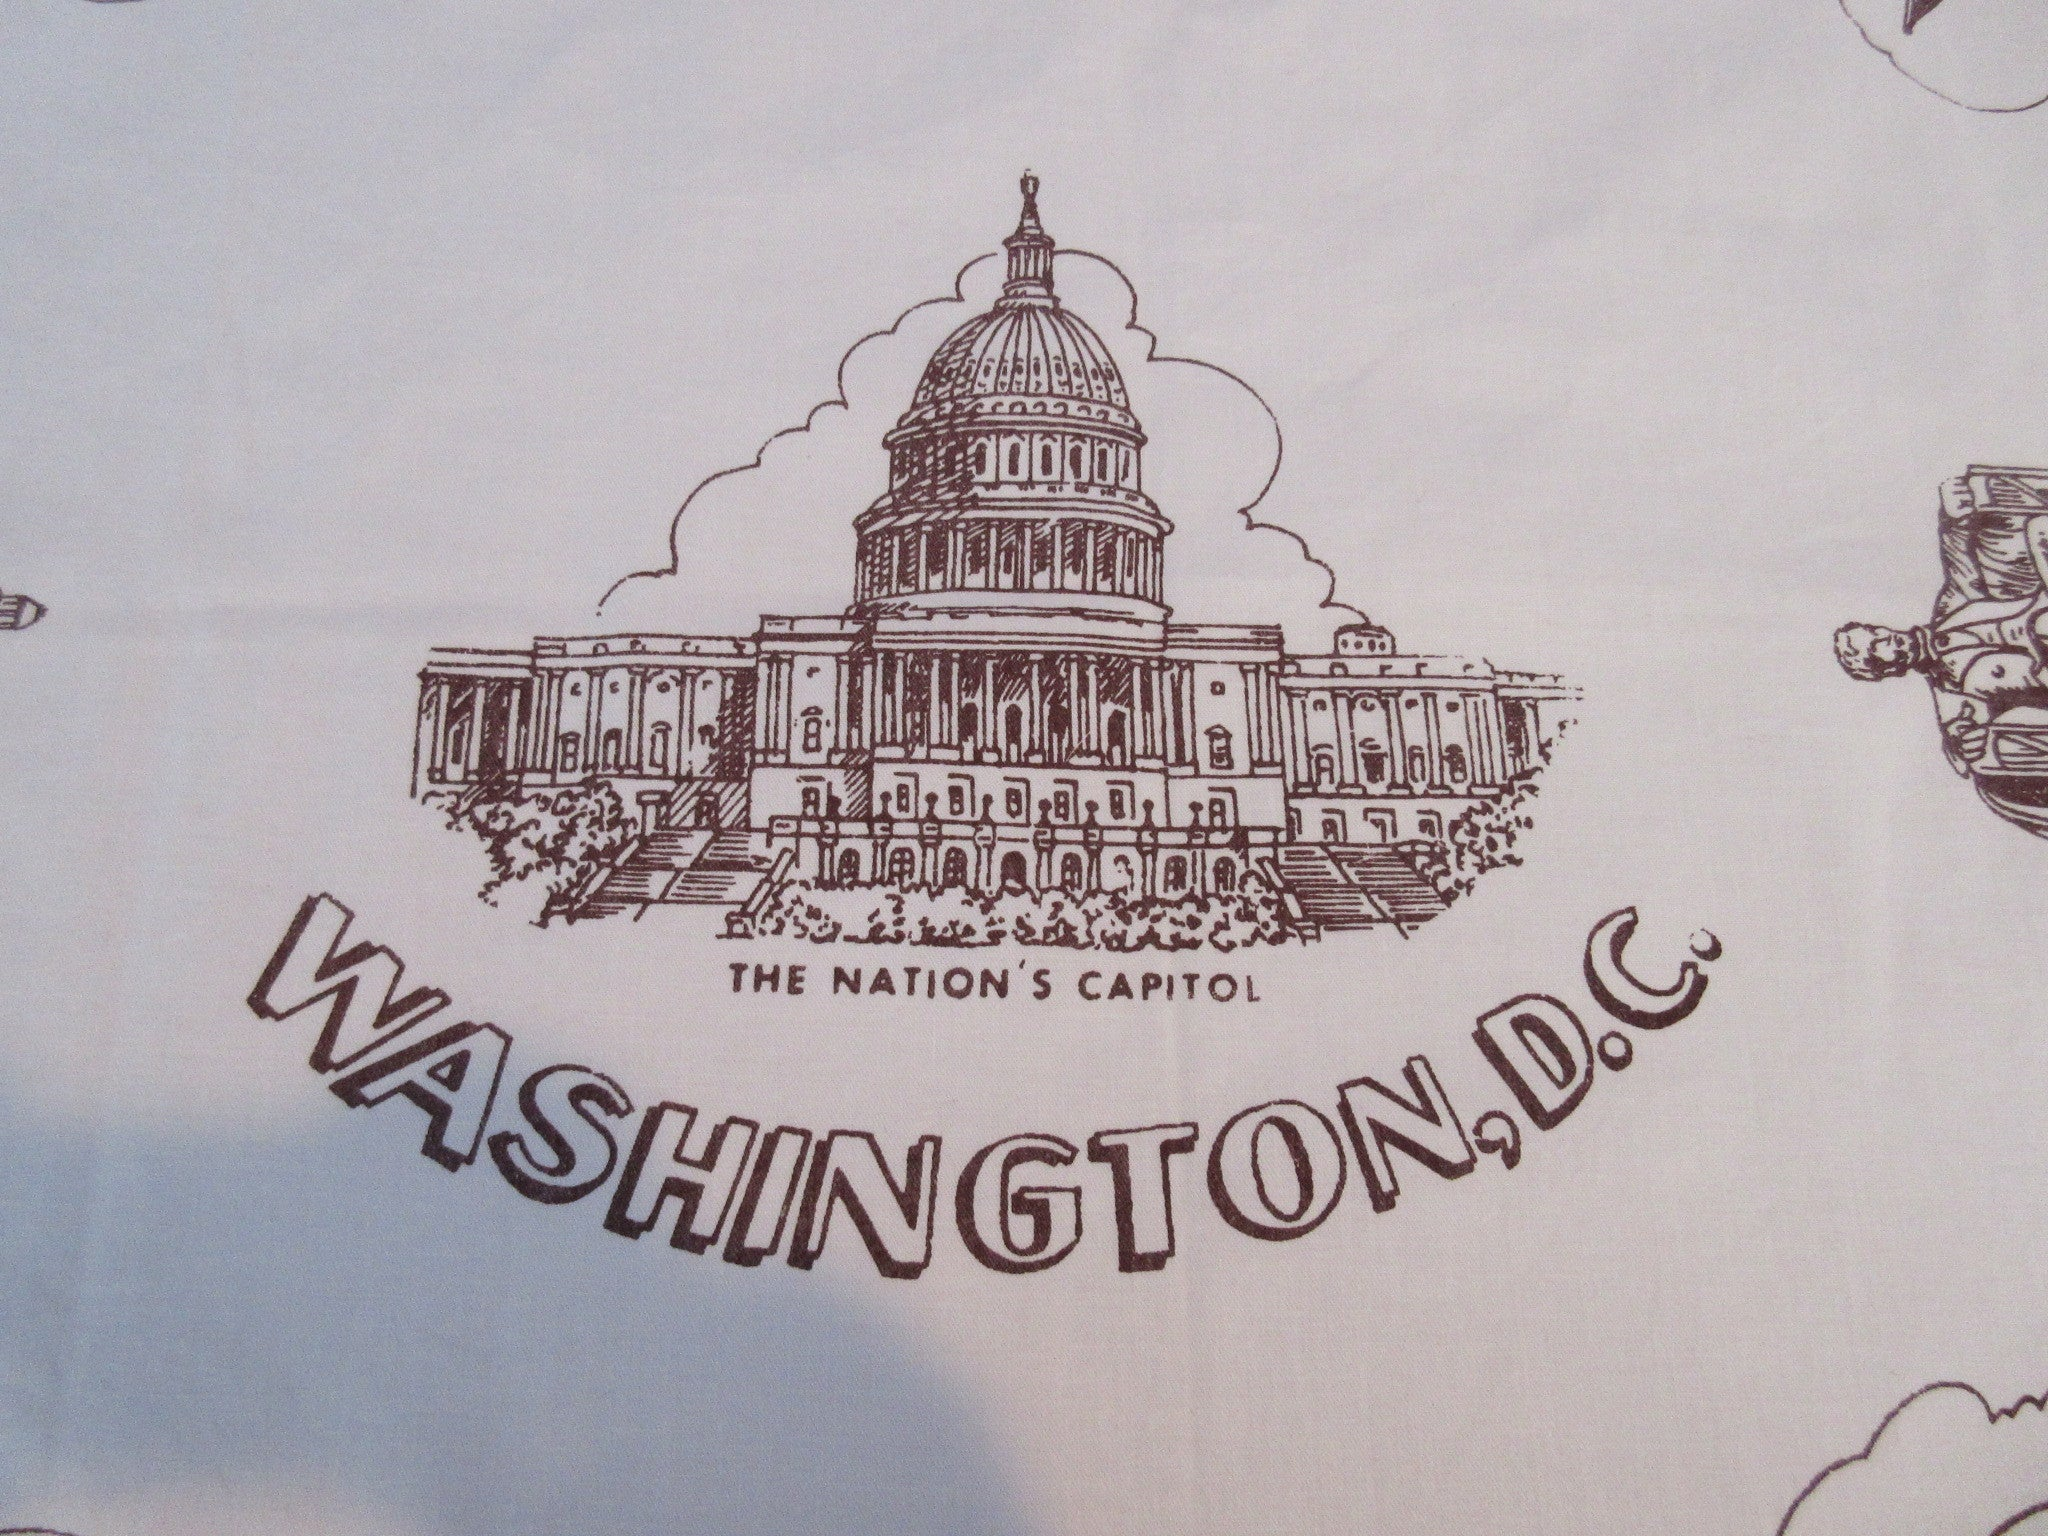 Rare Washington DC Capitol Souvenir Novelty Vintage Printed Tablecloth (37 X 34)